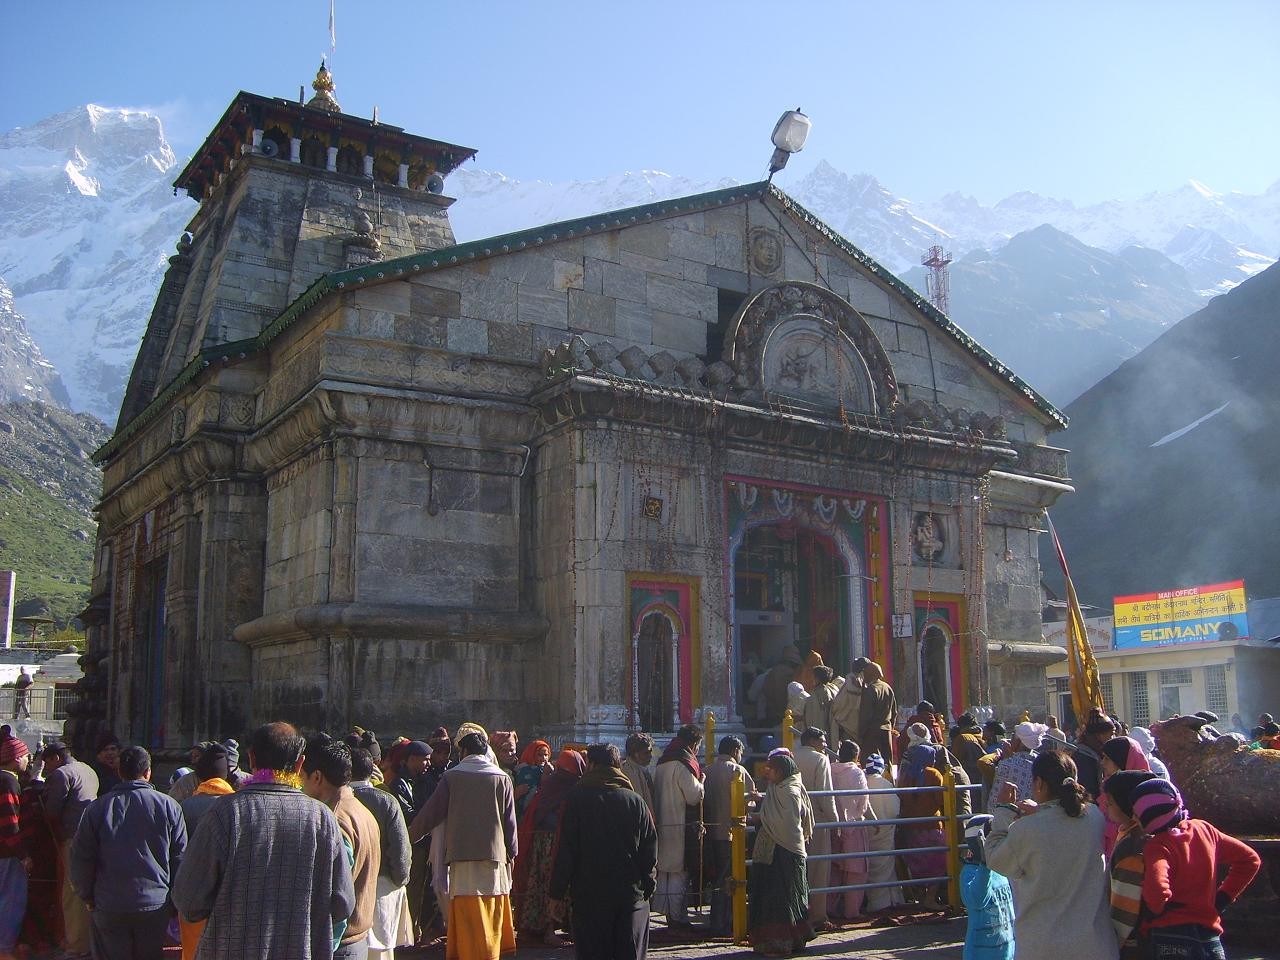 Kedarnath India  city photos gallery : Kedarnath temple – photo gallery, pictures of India